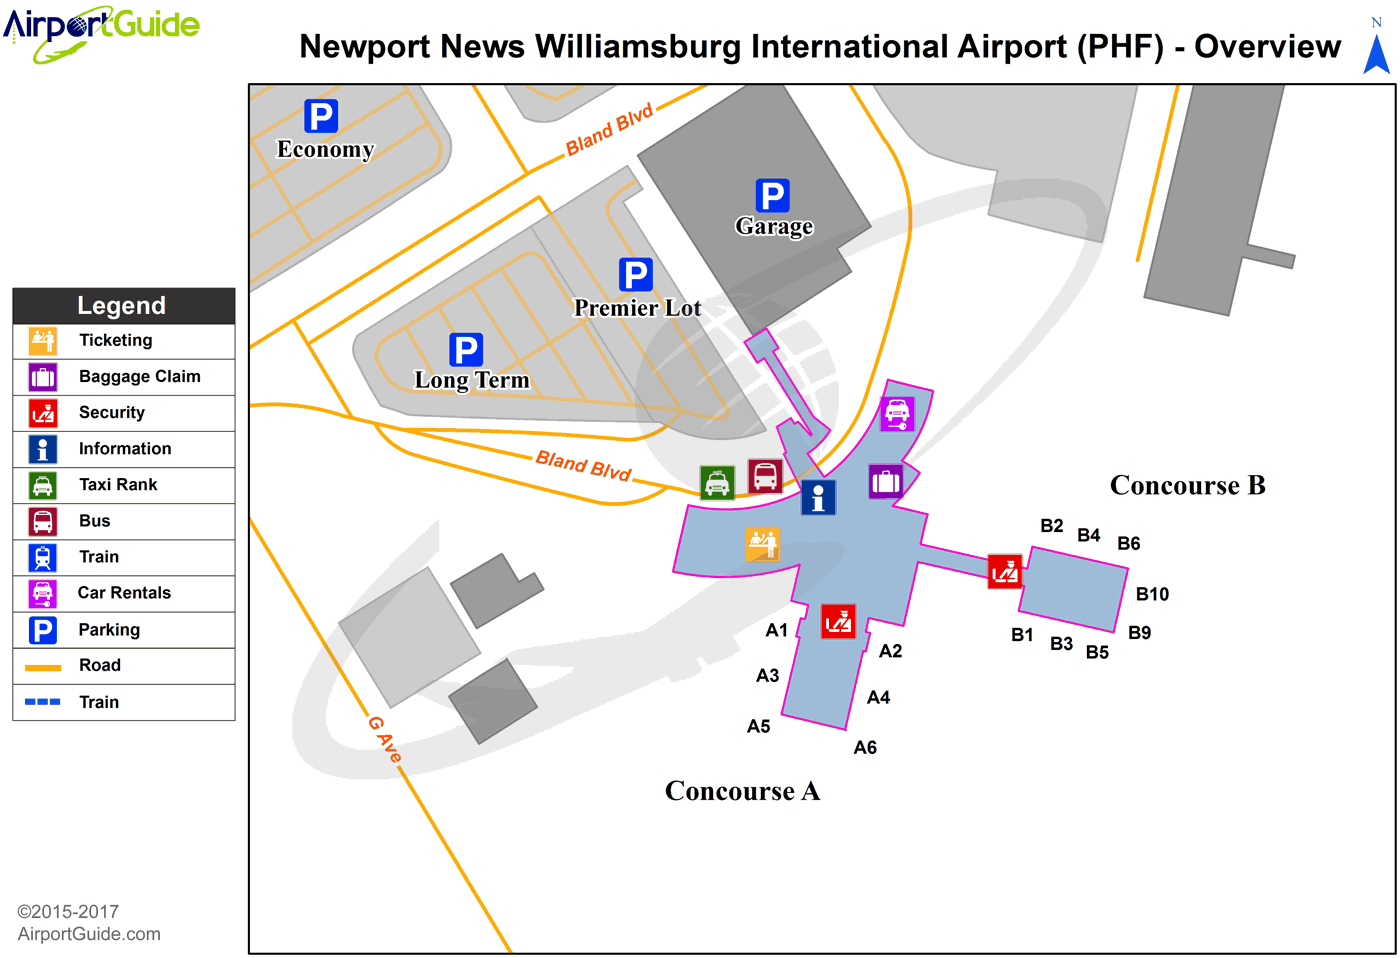 Newport News - Newport News/Williamsburg International (PHF) Airport Terminal Map - Overview